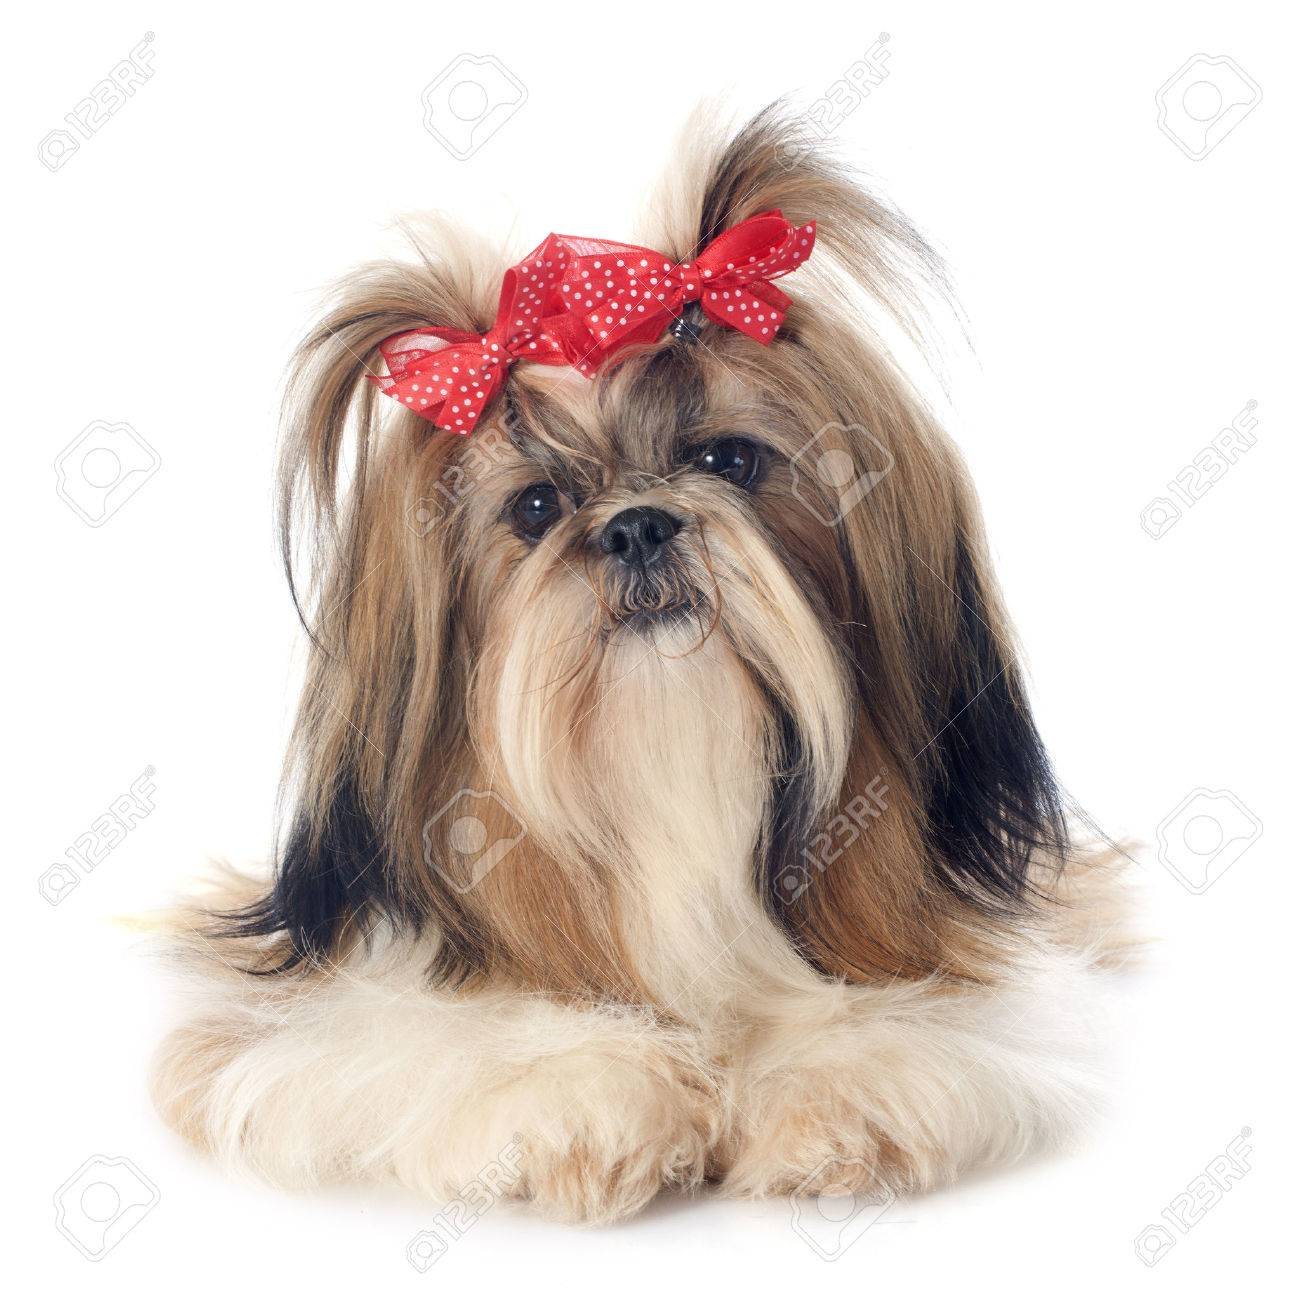 purebred Shih Tzu in front of white background Stock Photo - 26183862